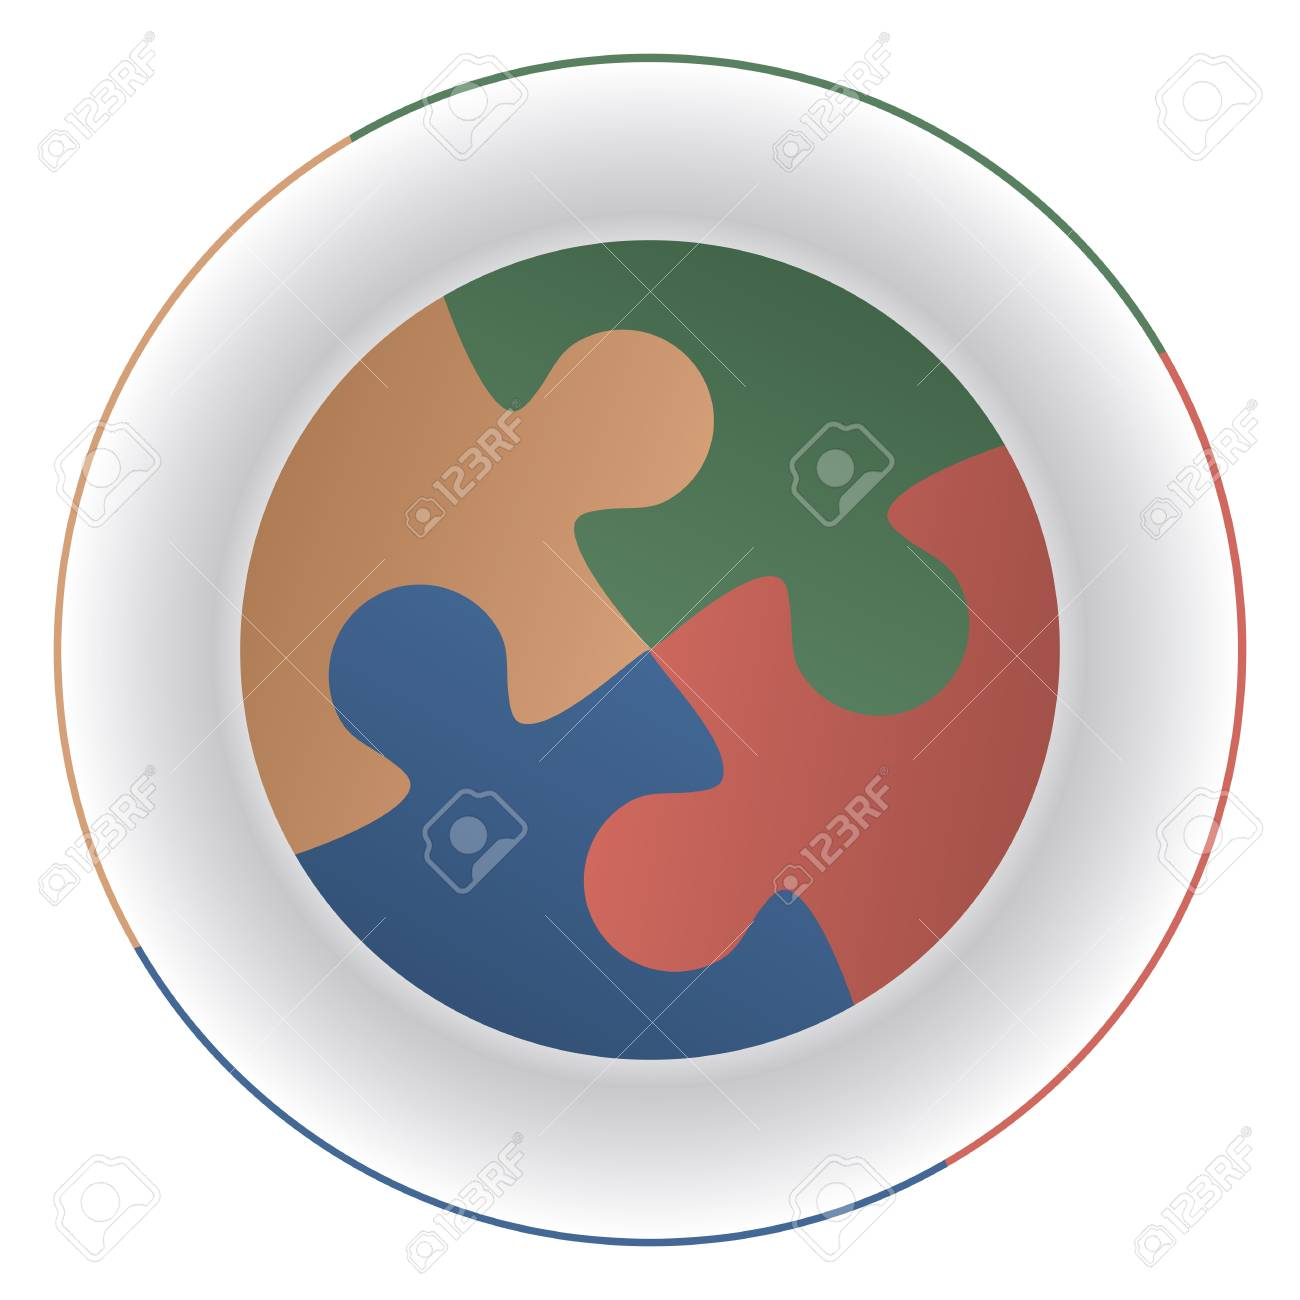 Jigsaw puzzle pieces on a plate as elements of a diet and reminiscent of mouths. Stock Vector - 22974363